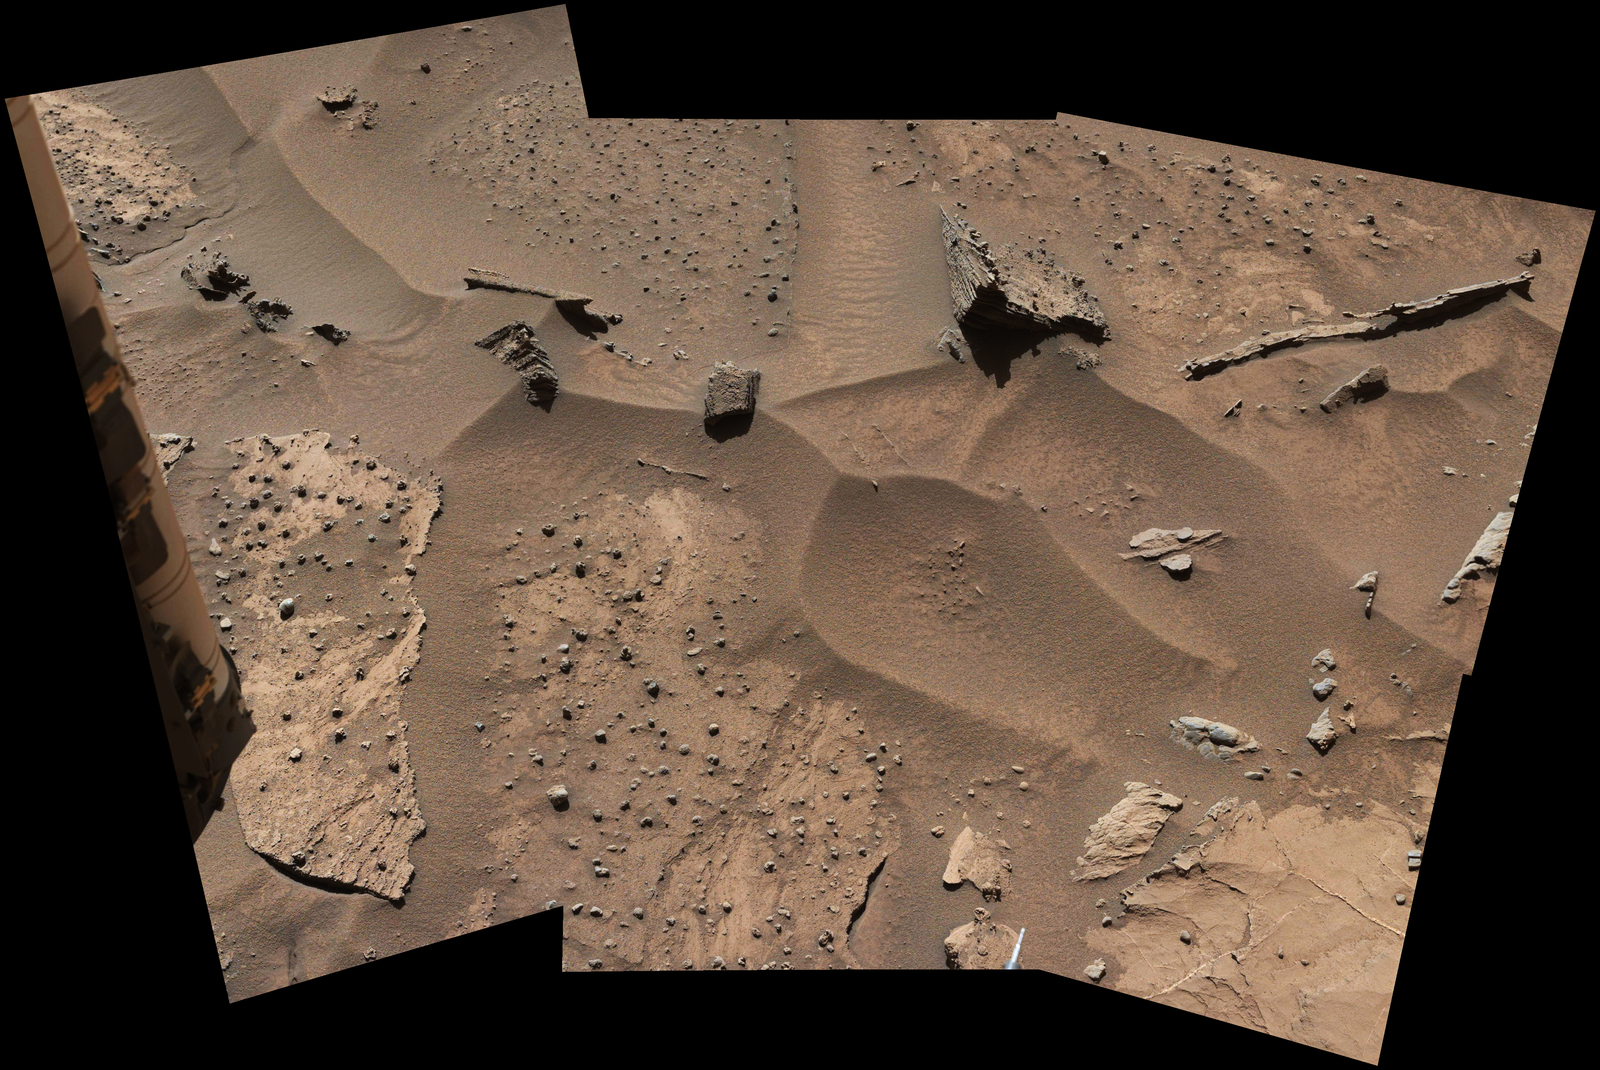 Mars rover research paper